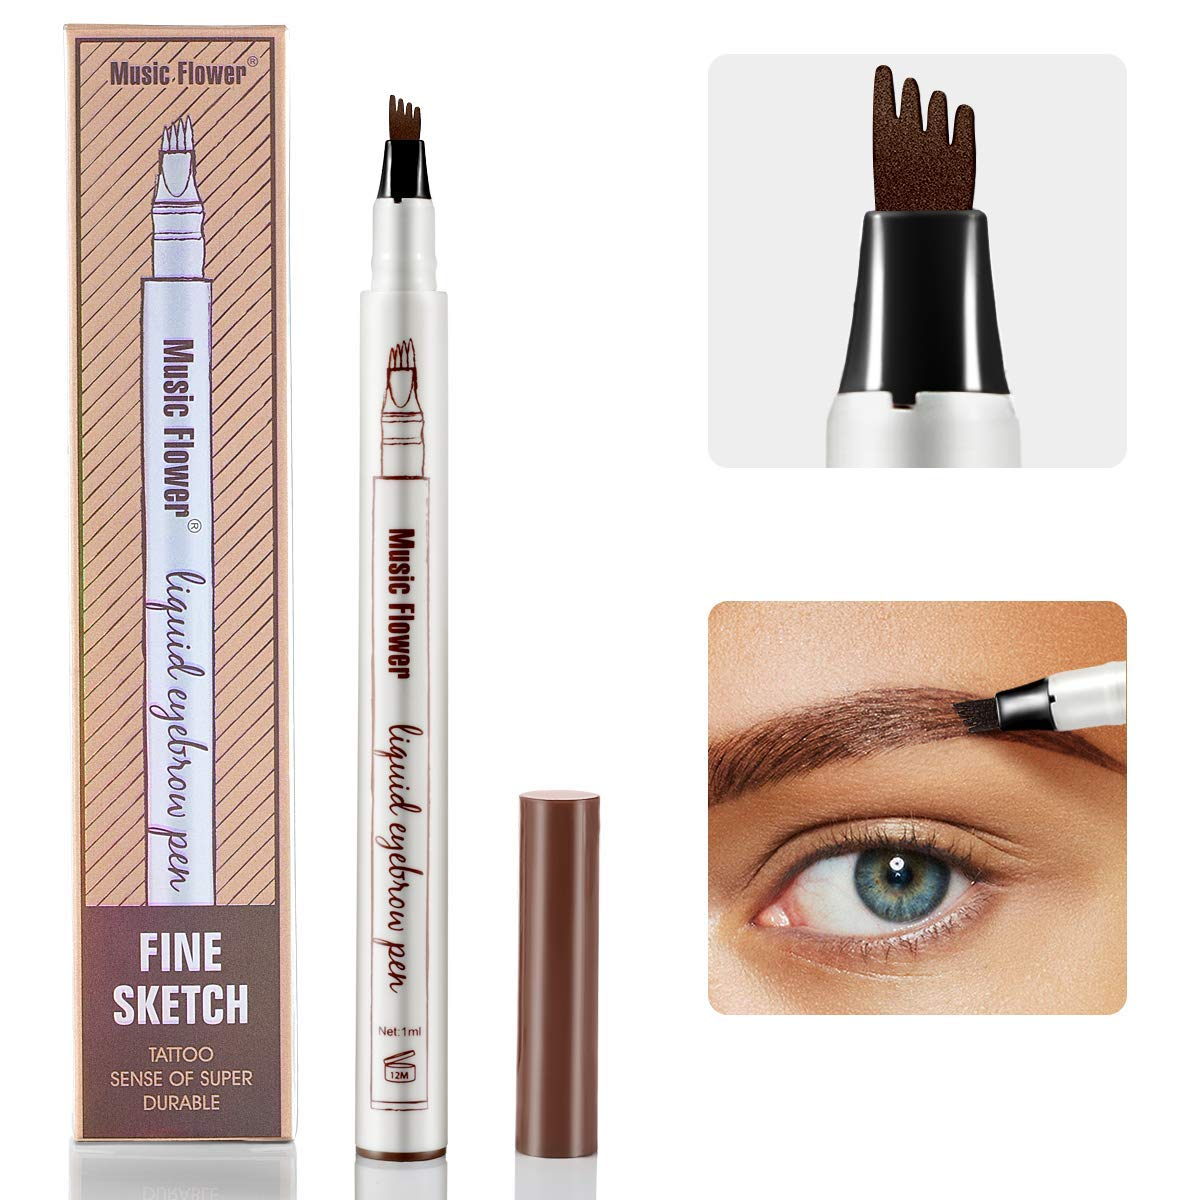 Eyebrow Tattoo Pen - iMethod Microblading Eyebrow Pencil with a Micro-Fork Tip Applicator Creates Natural Looking Brows Effortlessly and Stays on All Day (Brown)